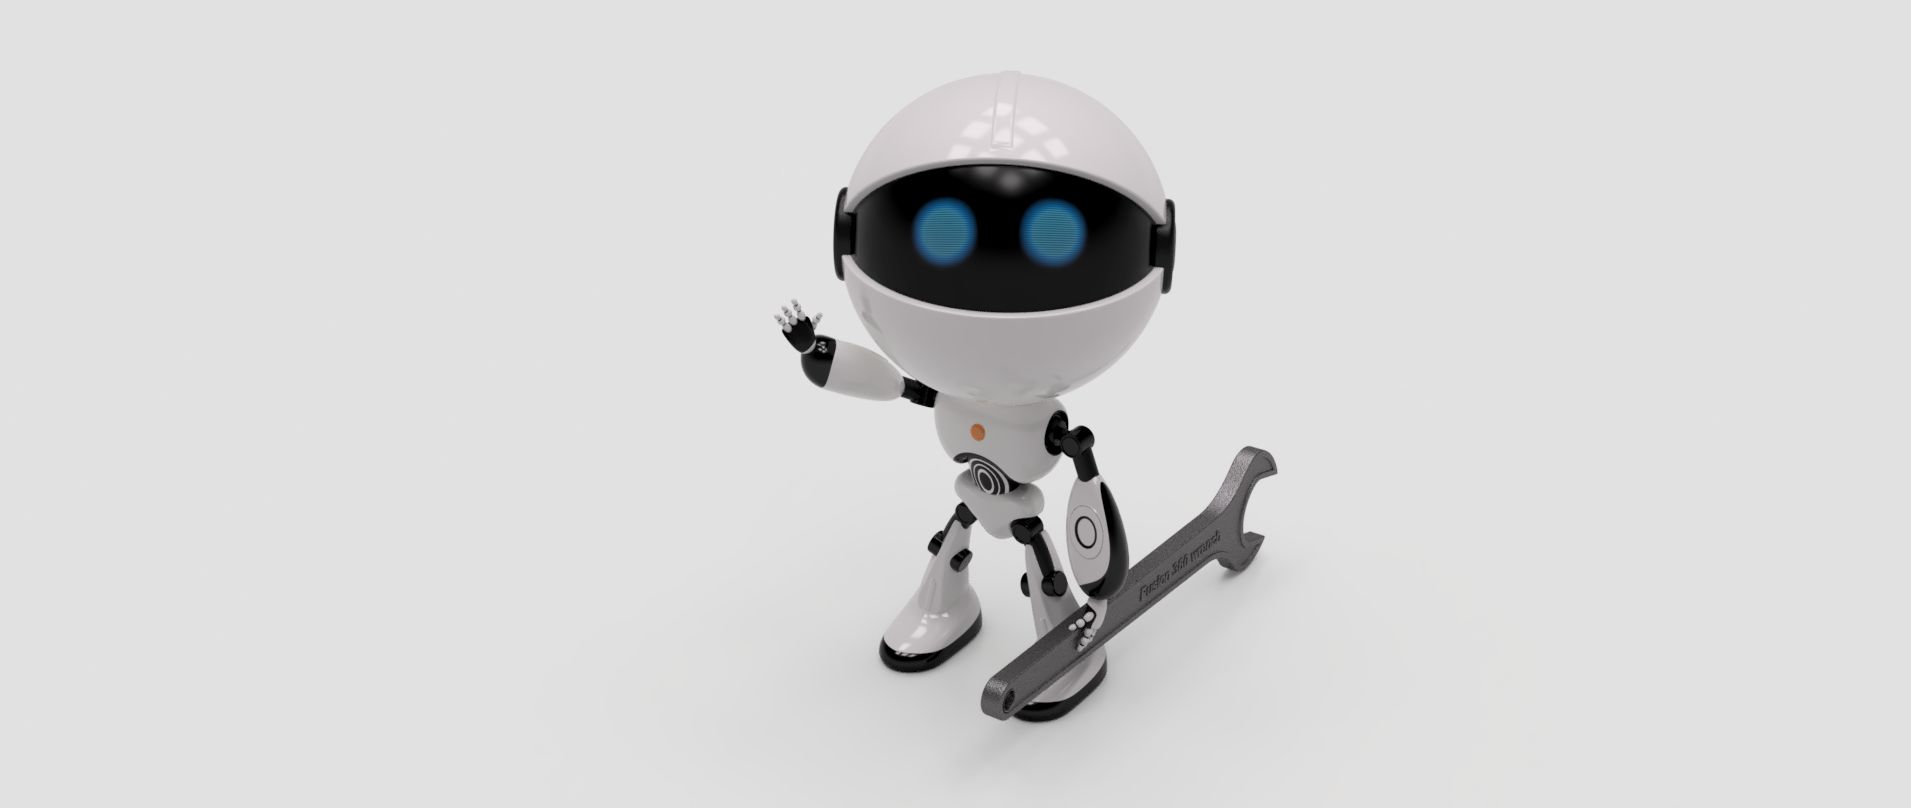 Robot-2017-jun-01-05-43-28pm-000-customizedview8762589869-3500-3500